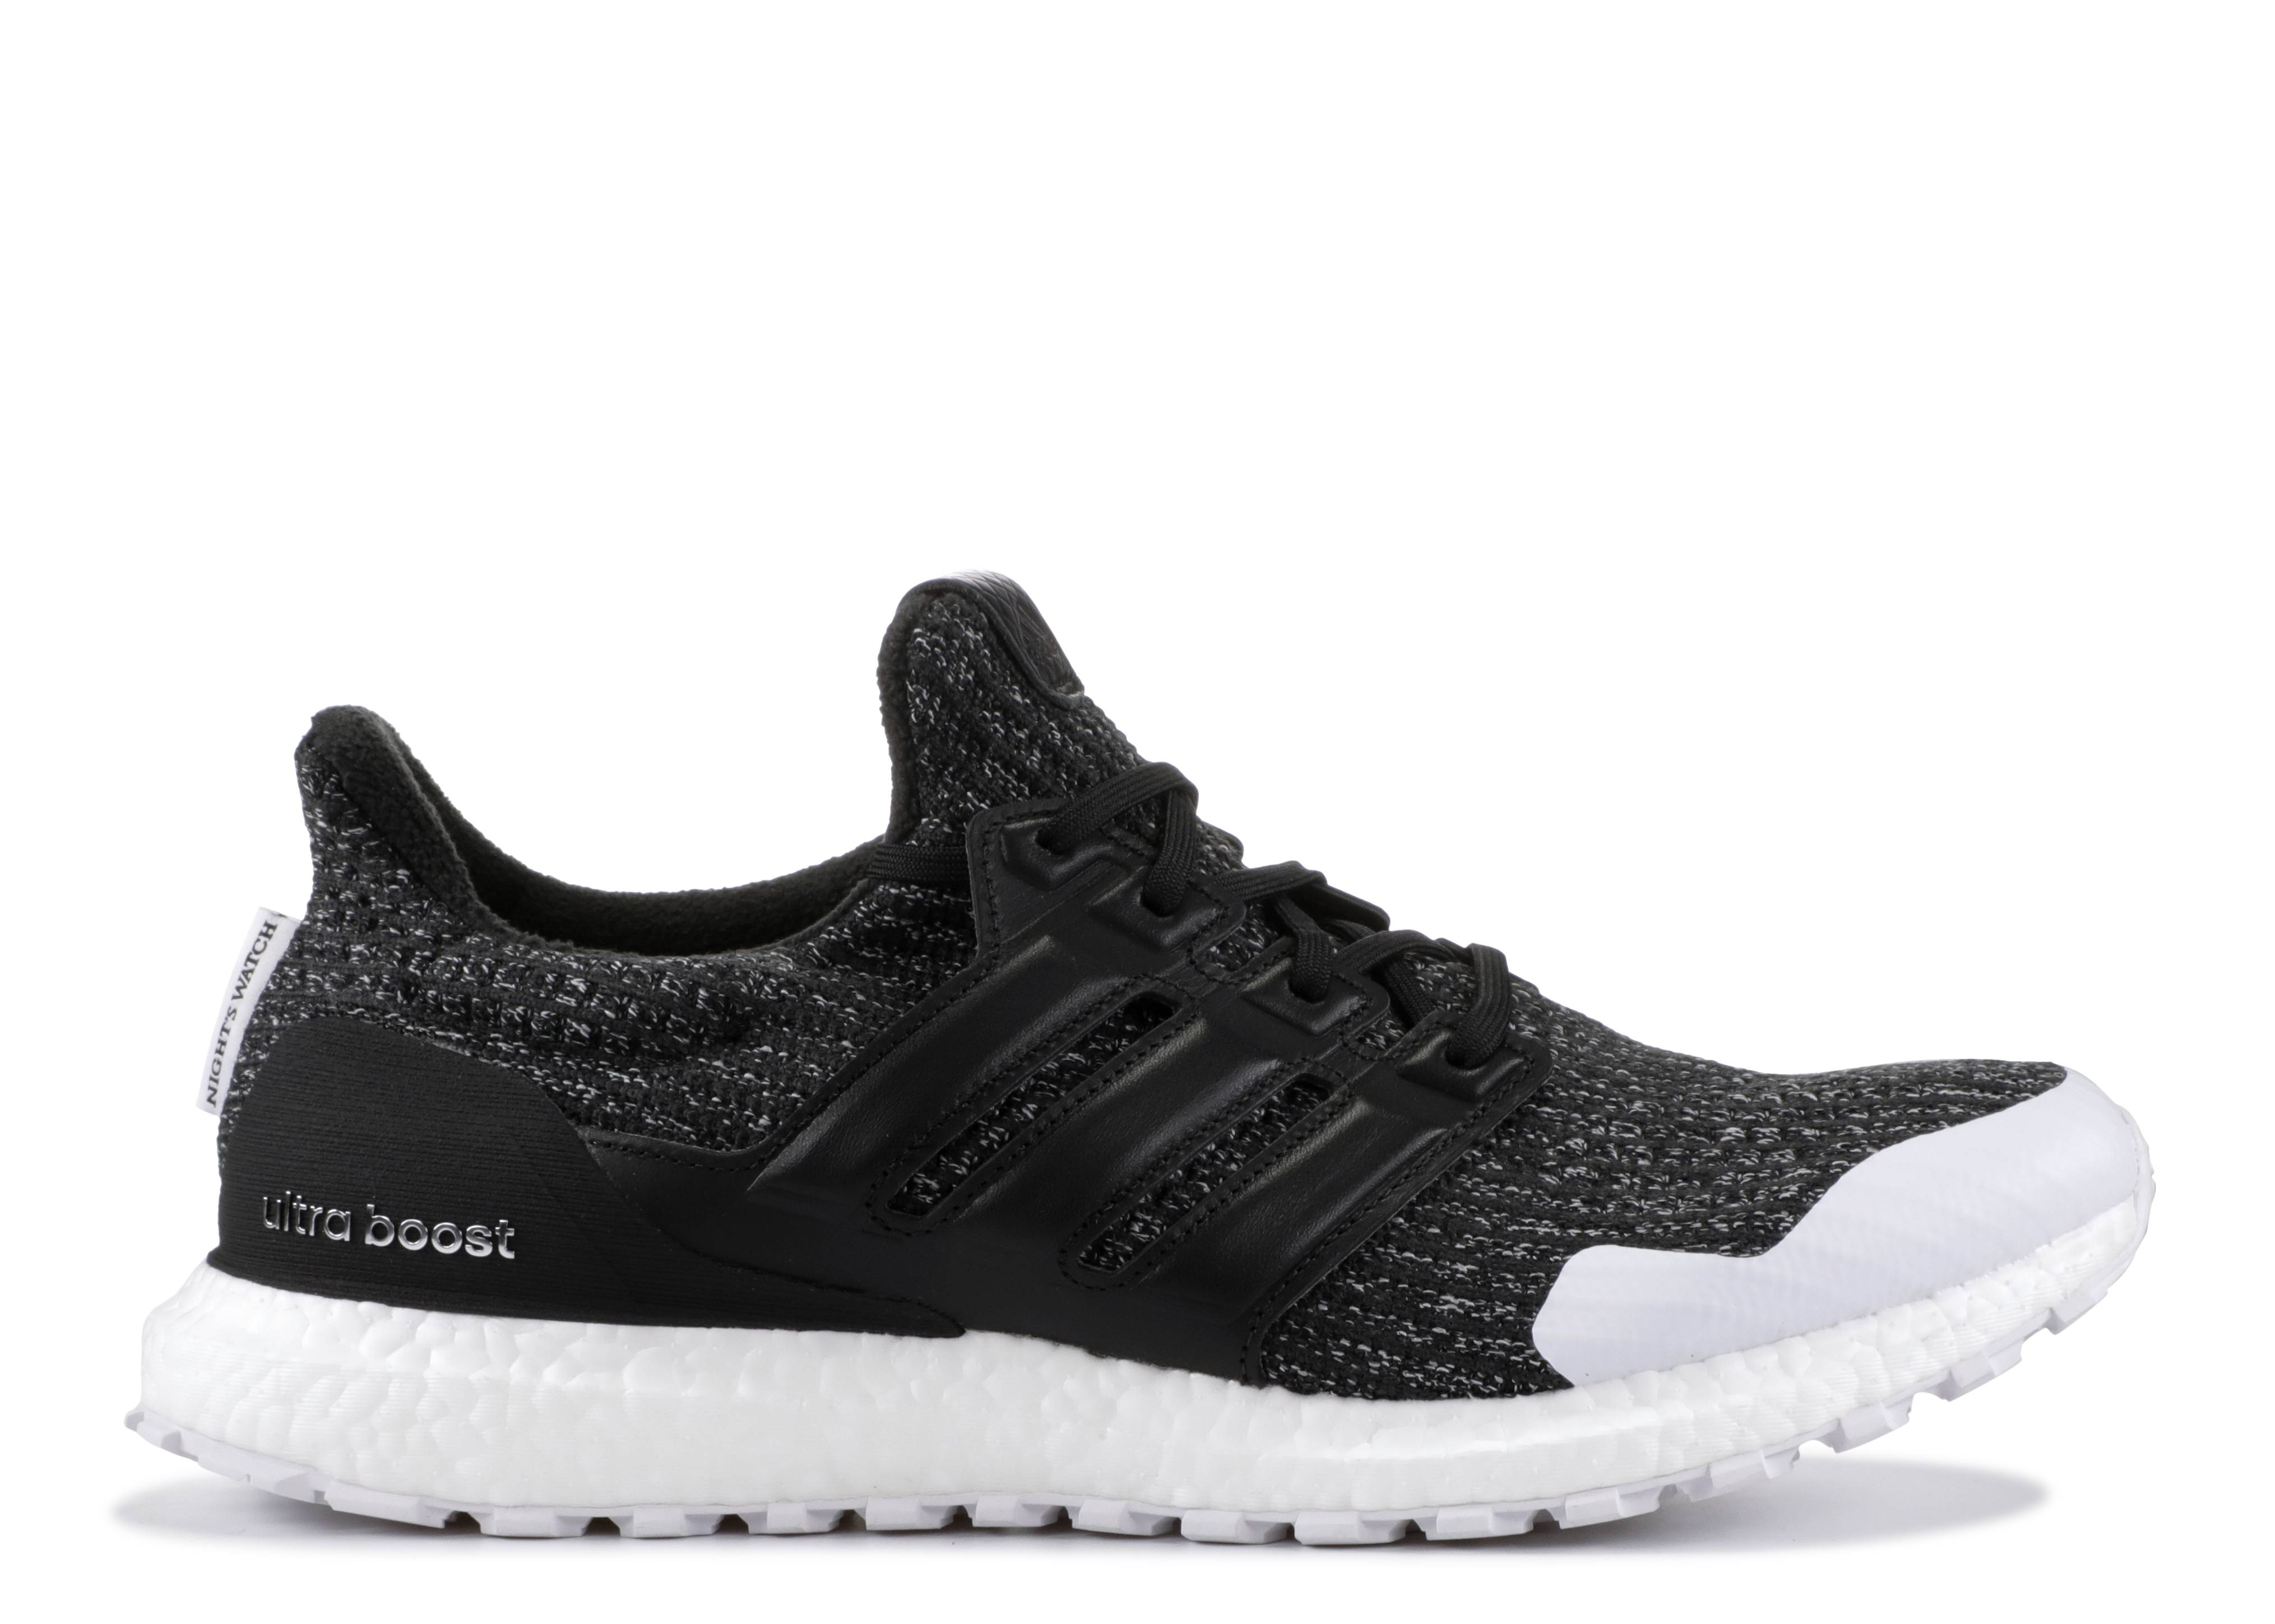 Game of Thrones x adidas Ultra Boost Night's Watch Dropping